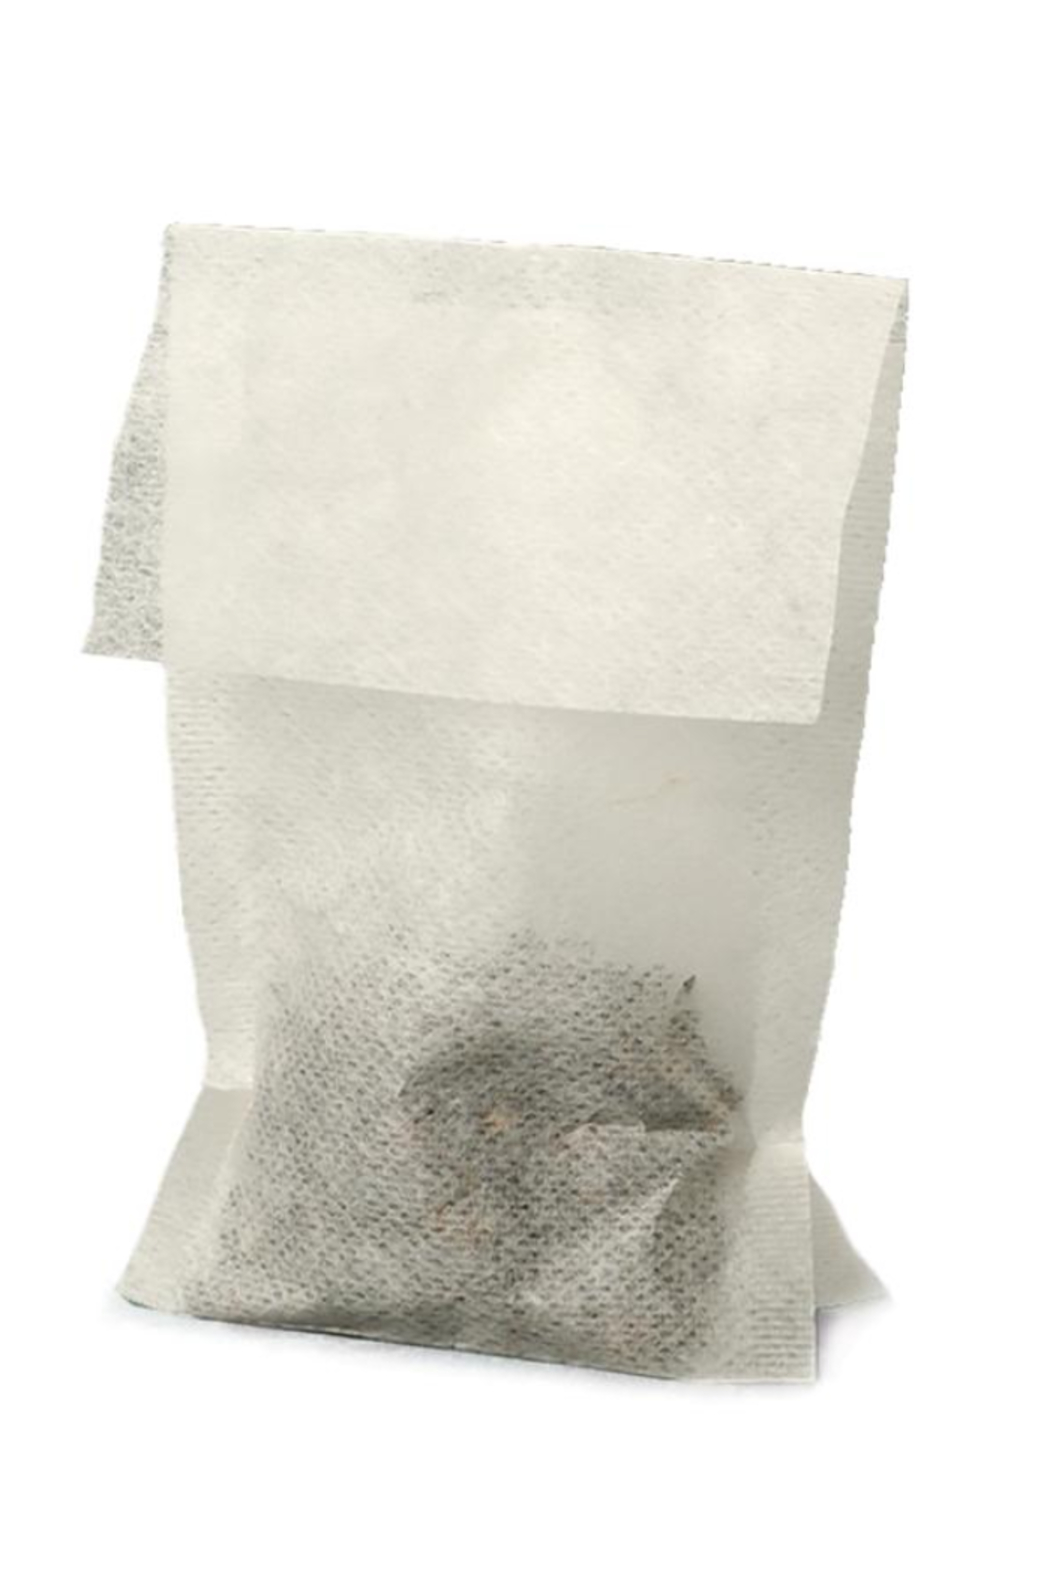 RSVP TEE S Finum Tea Filter 100ct - Main Image